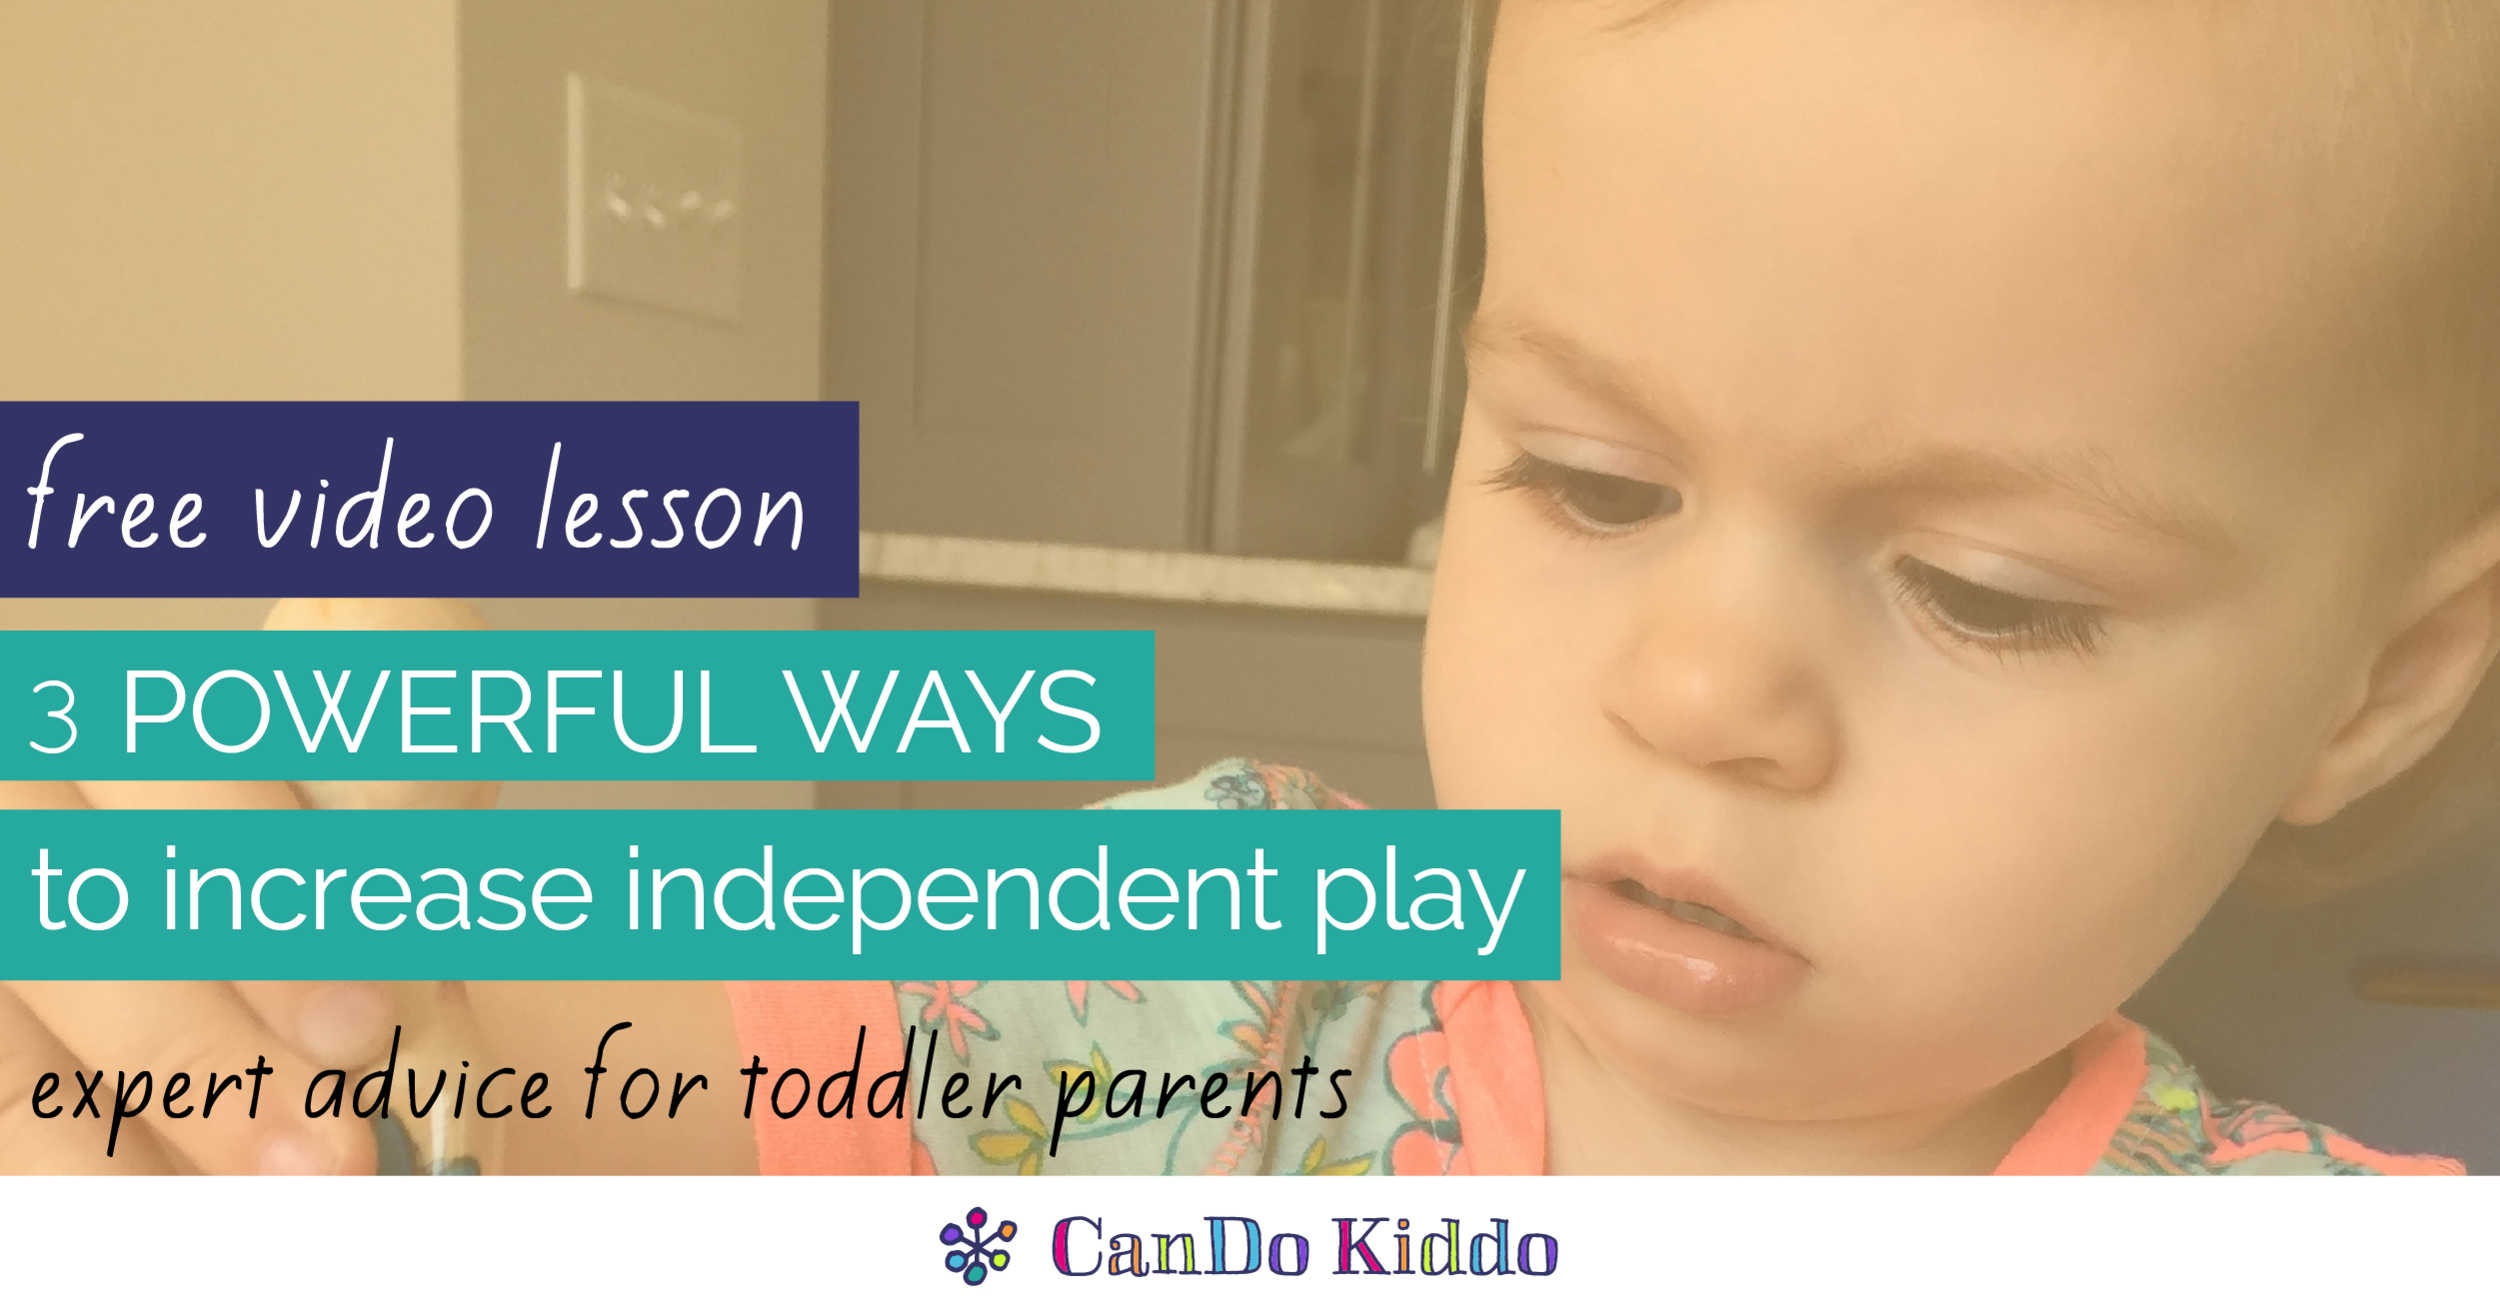 Free Video Lesson on Toddler Play www.candokiddo.com